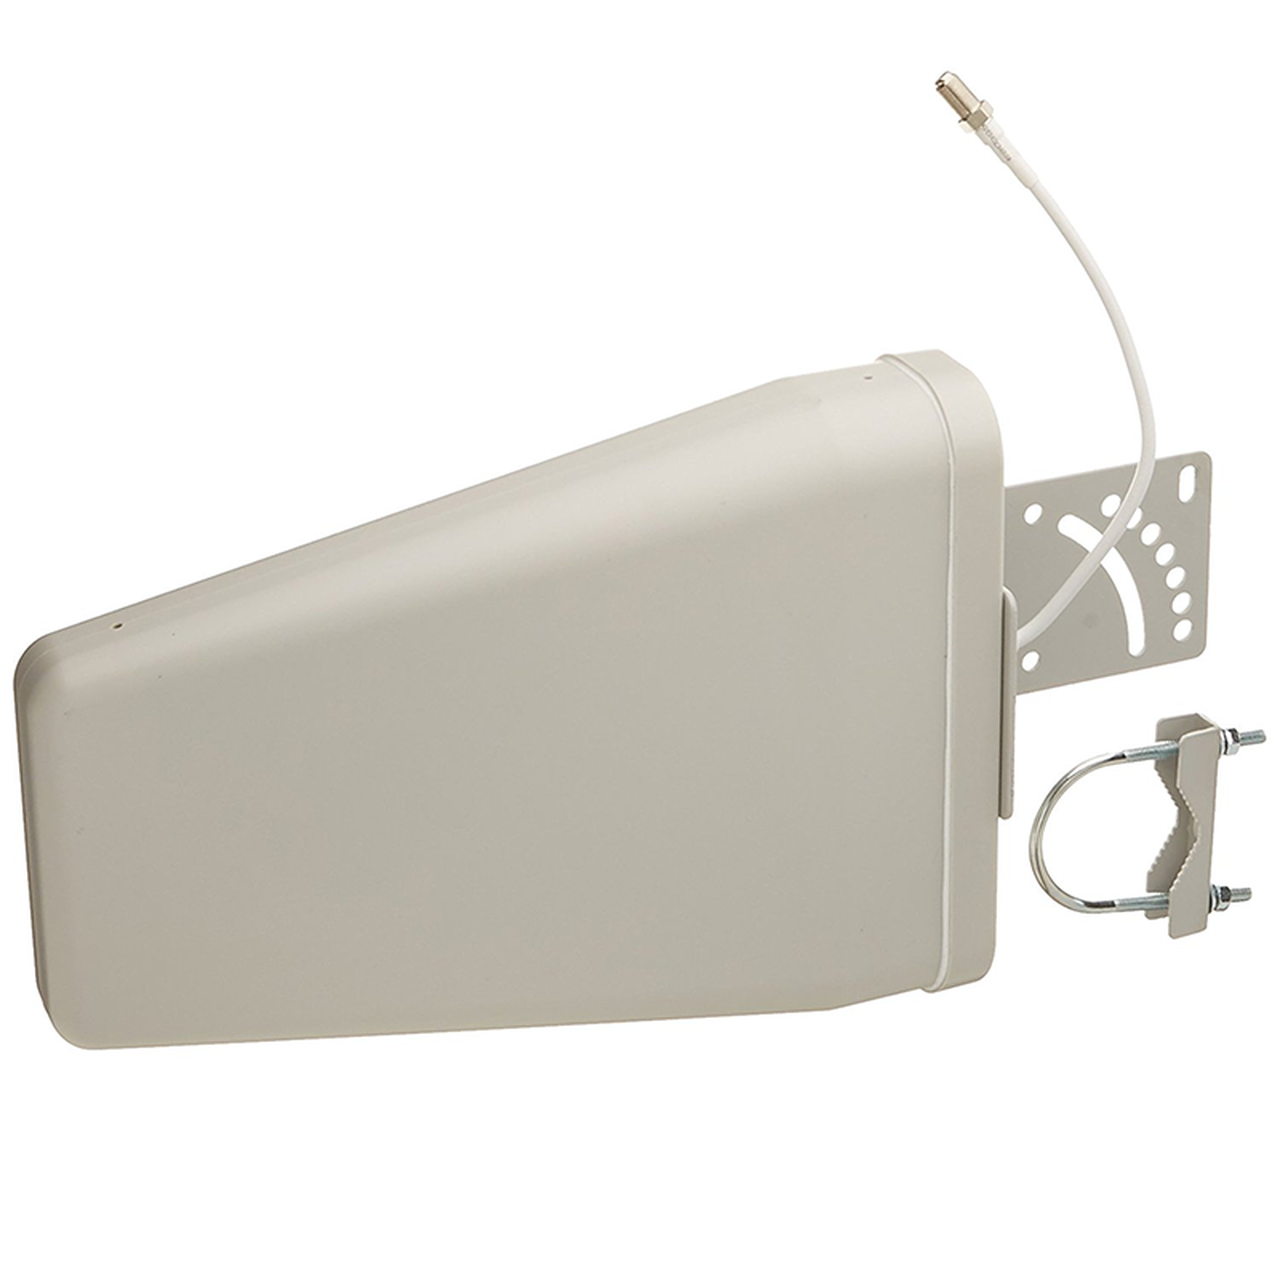 75 Ohm Wide Band Directional Antenna SKU: 314475